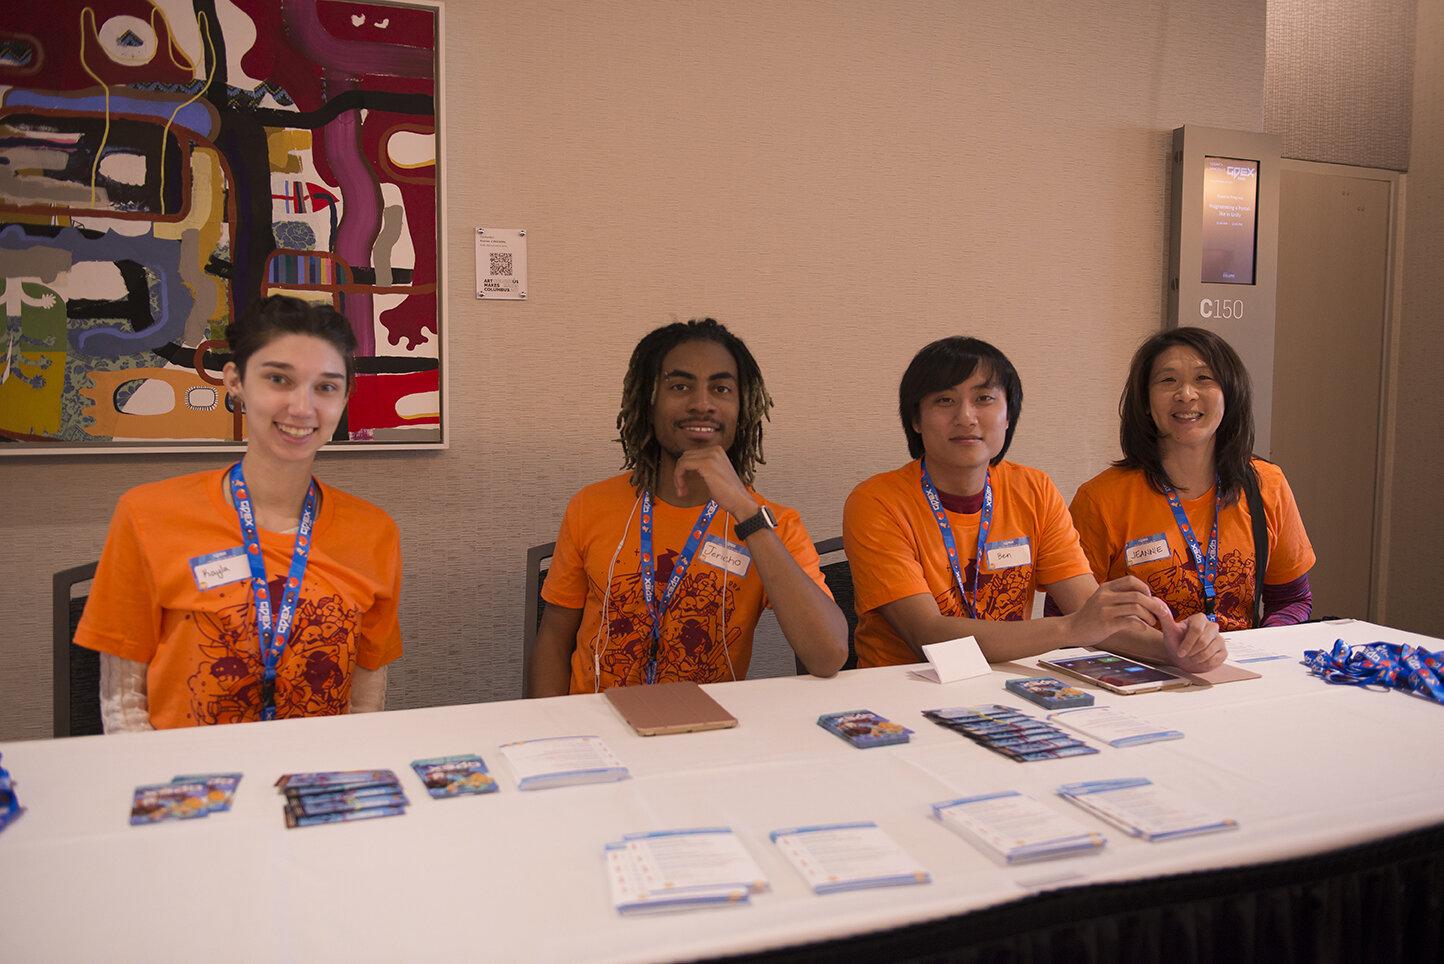 If you ever have any questions, just look for the Orange shirts. They're some of the best volunteers in the business!